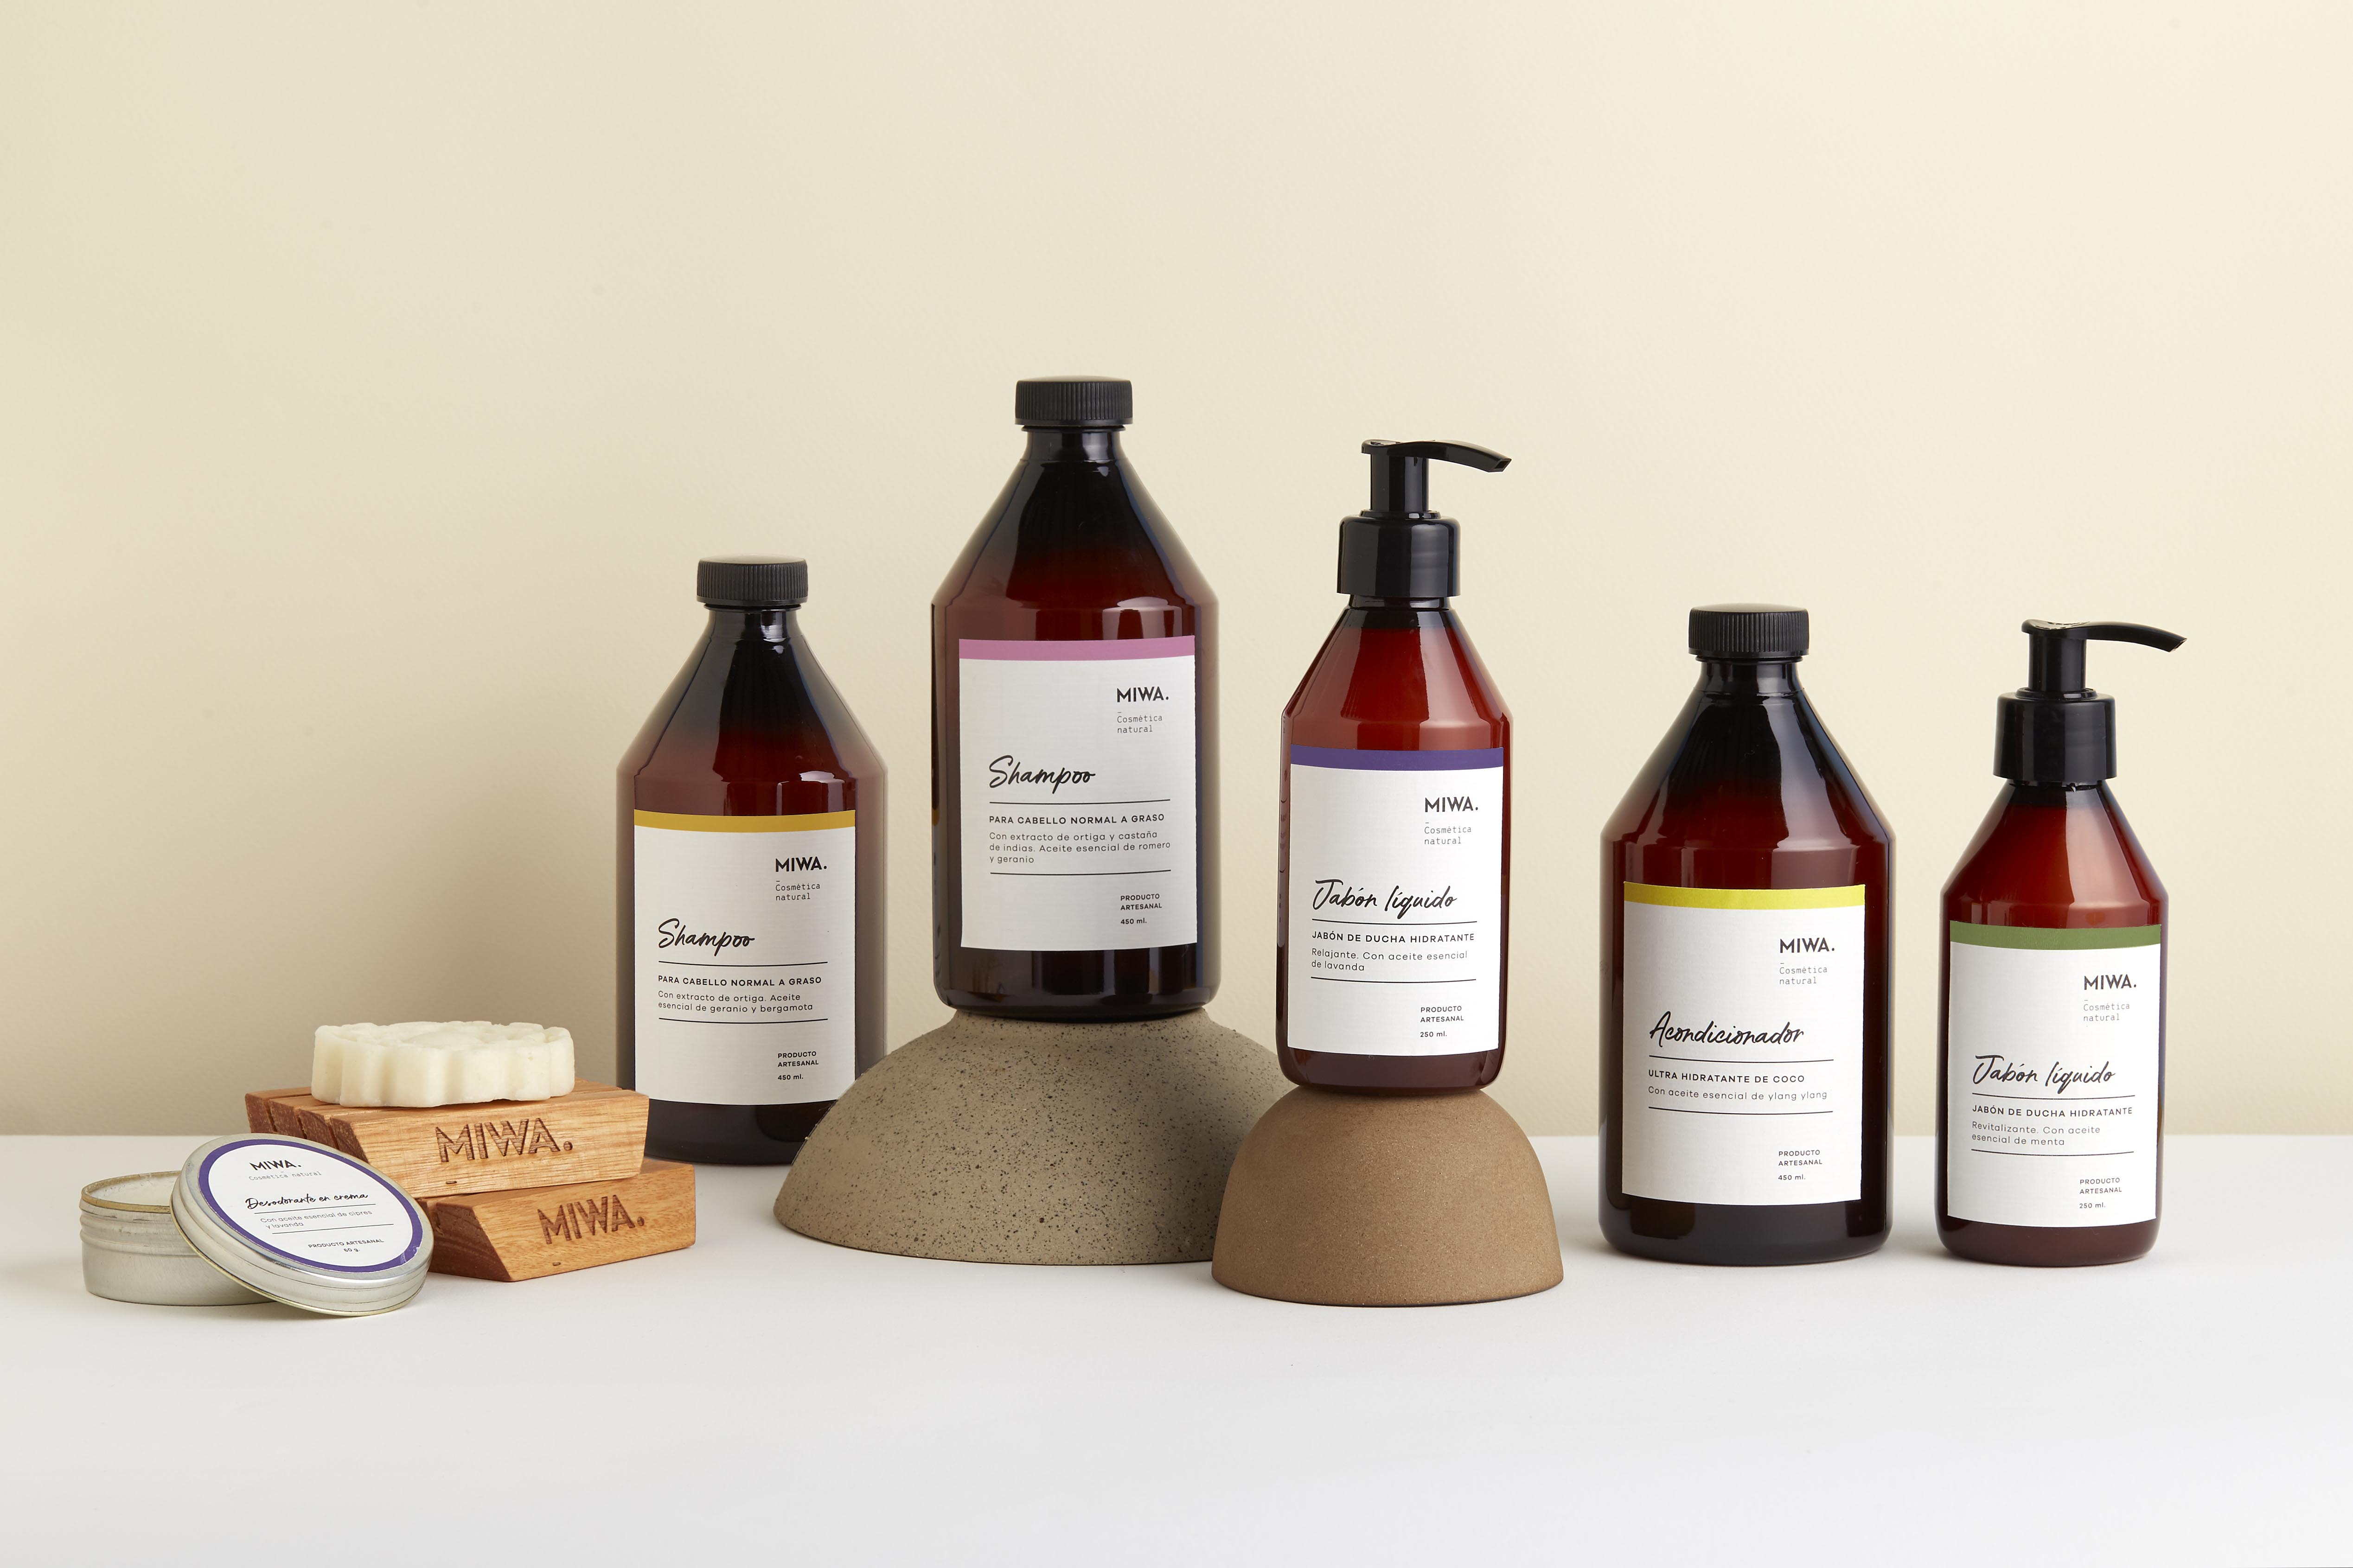 Miwa Natural Skincare and Cosmethics Brand and Packaging Design by Cobra